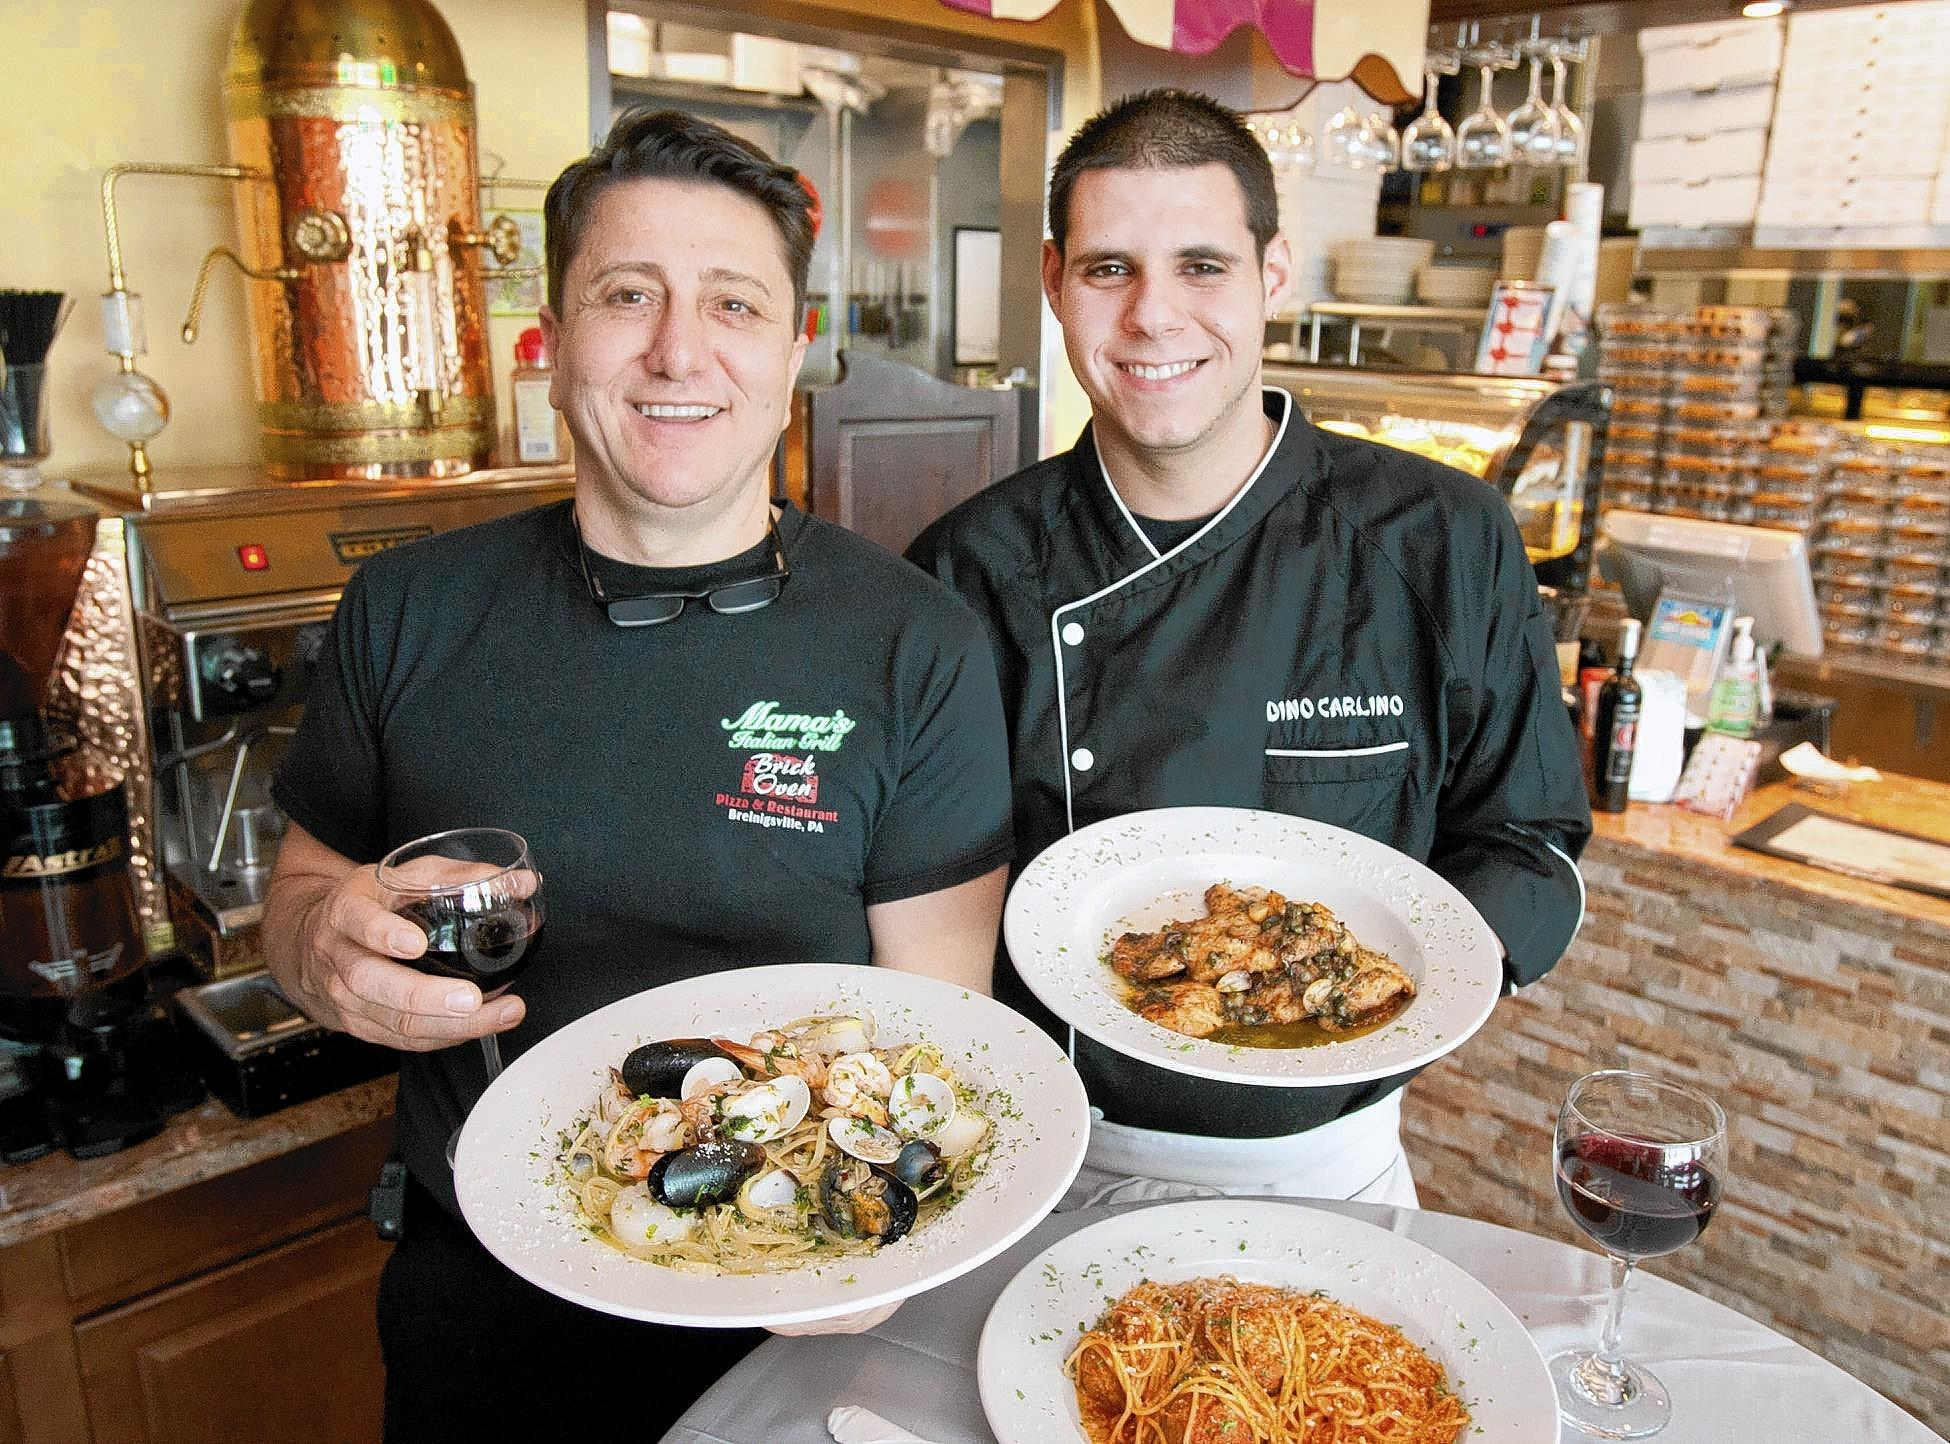 Mama's Italian Grill owner Giuseppe DiFiore (left) and chef Dino Carlino hold plates of the Seafood Combination and Chicken Piccata at Mama's Italian Grill in Upper Macungie Township.